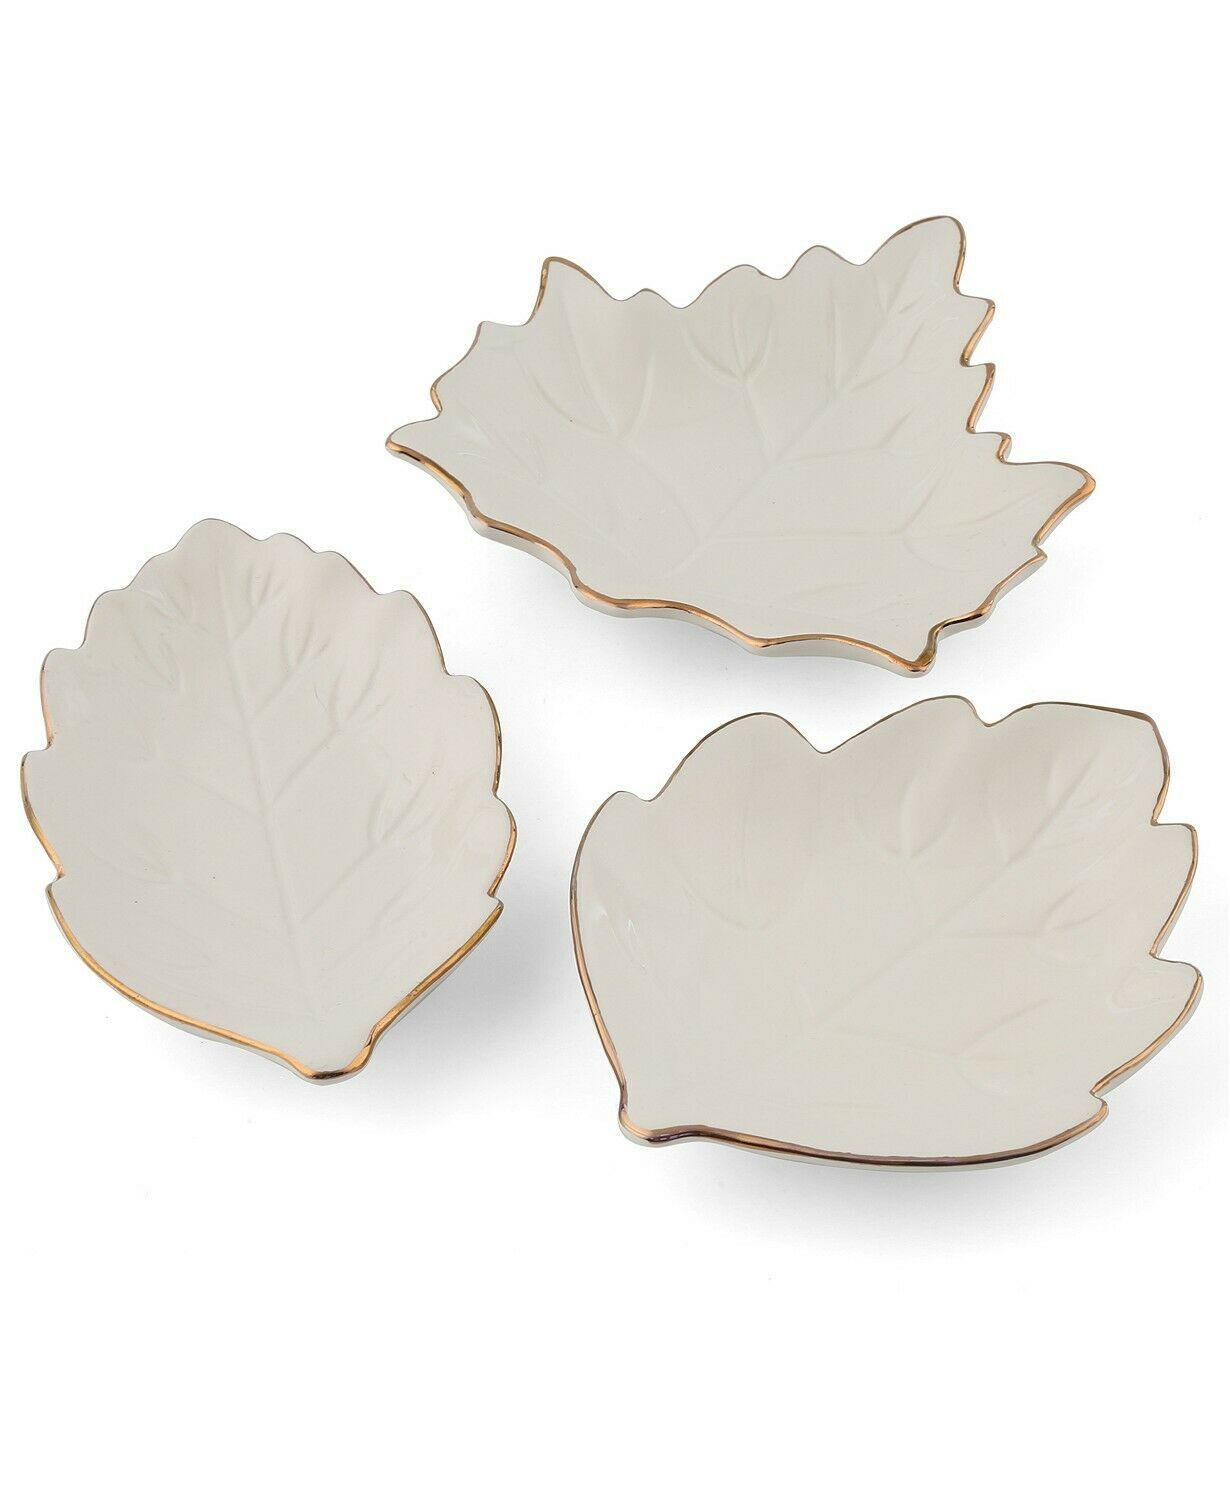 Thirstystone Set of 3 Leaf Shaped Harvest Gold Rim Ceramic Appetizer Plates NEW